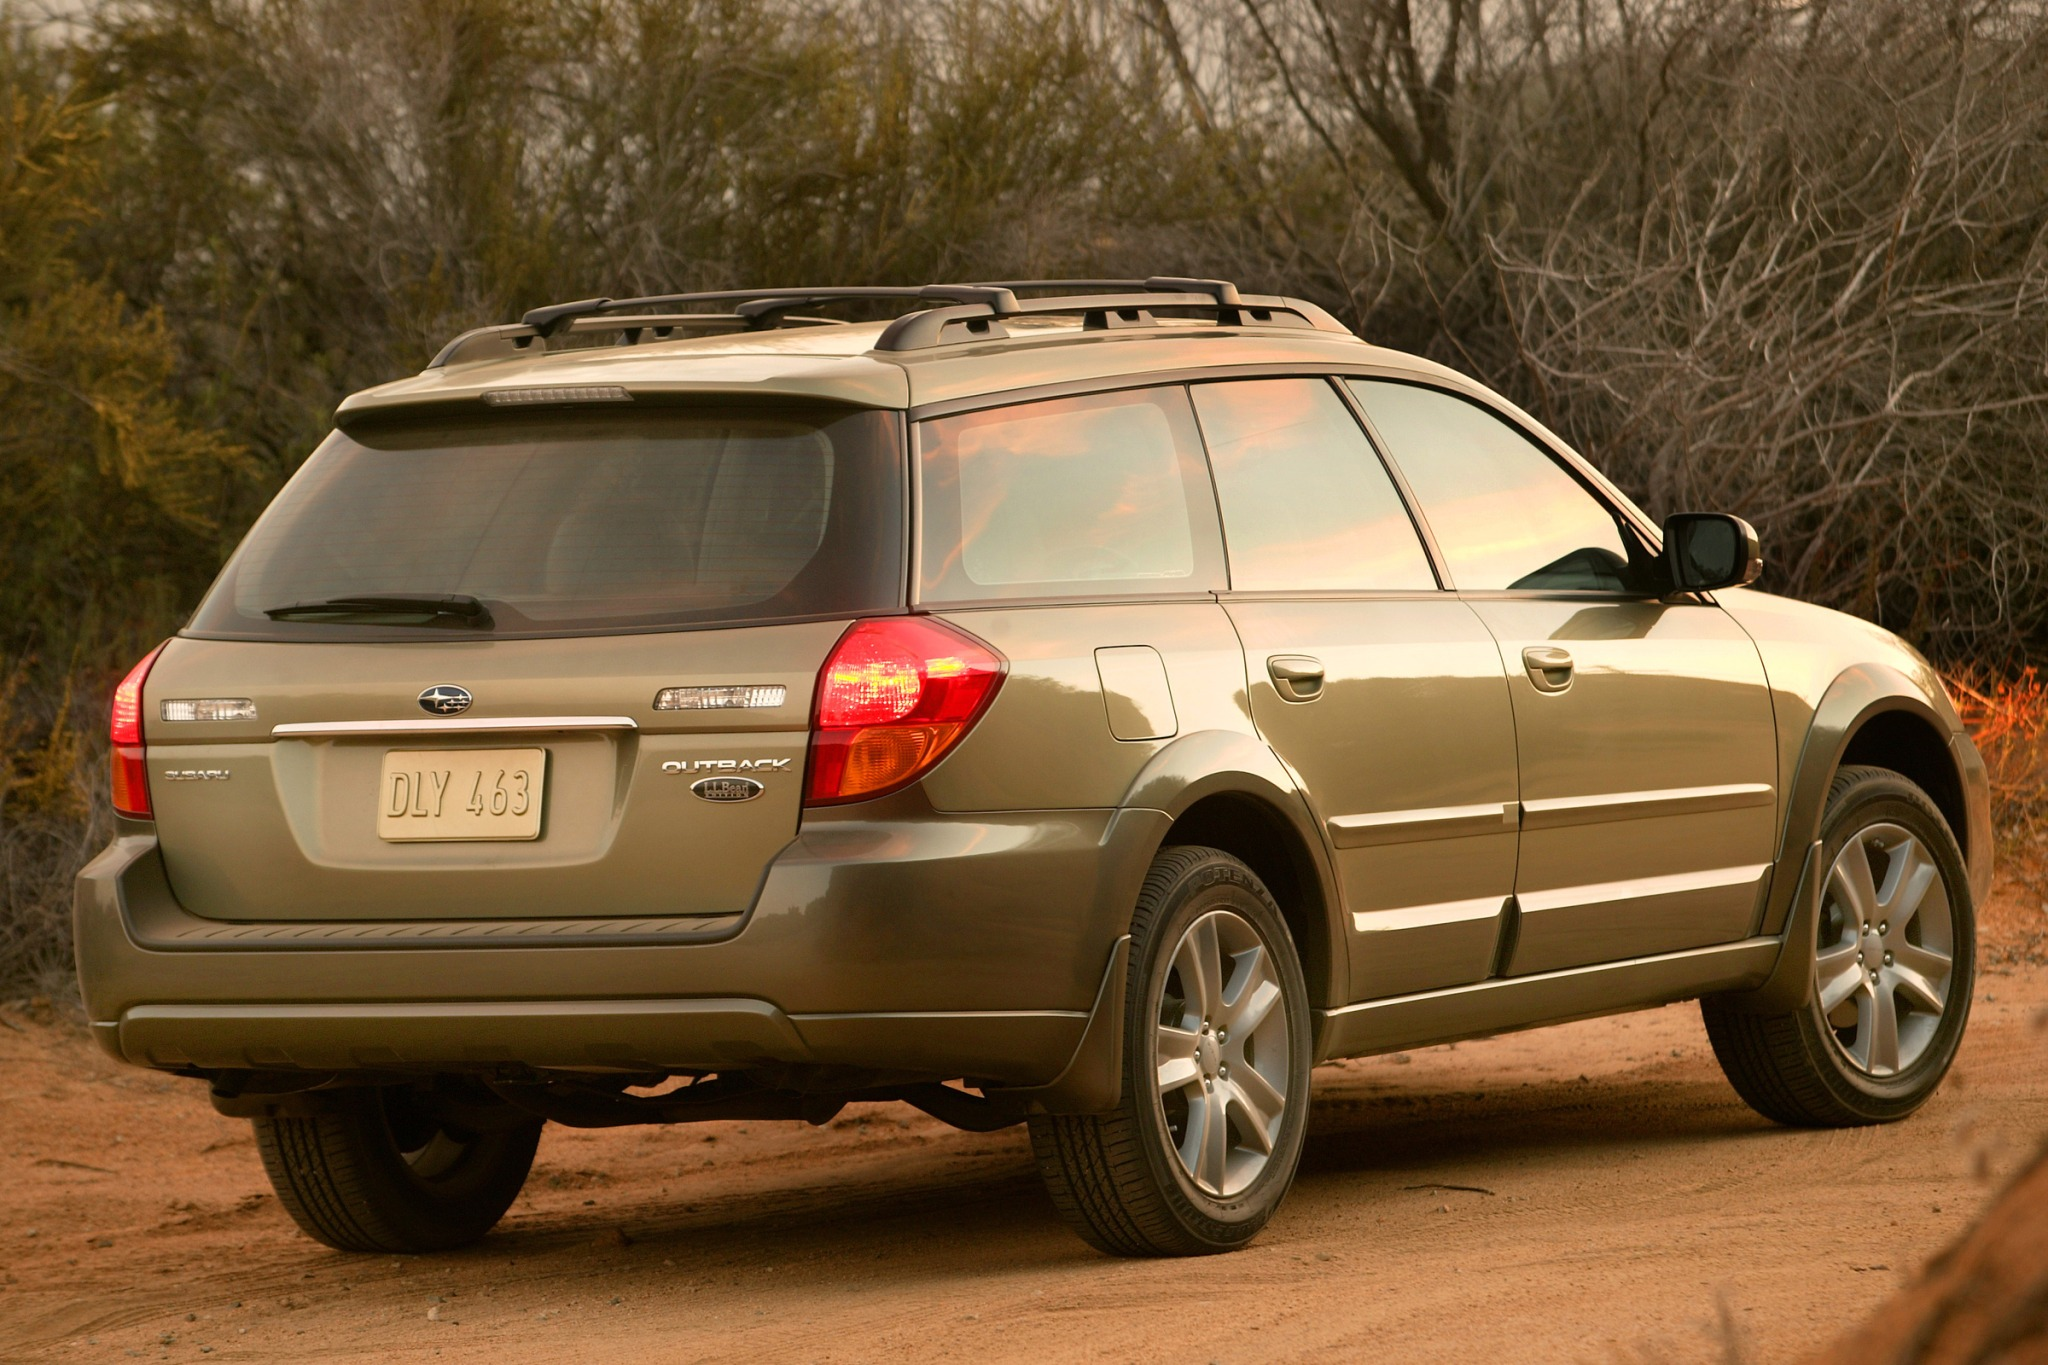 2007 subaru outback information and photos zombiedrive 2007 subaru outback 5 2007 subaru outback 25 x exterior 5 vanachro Gallery